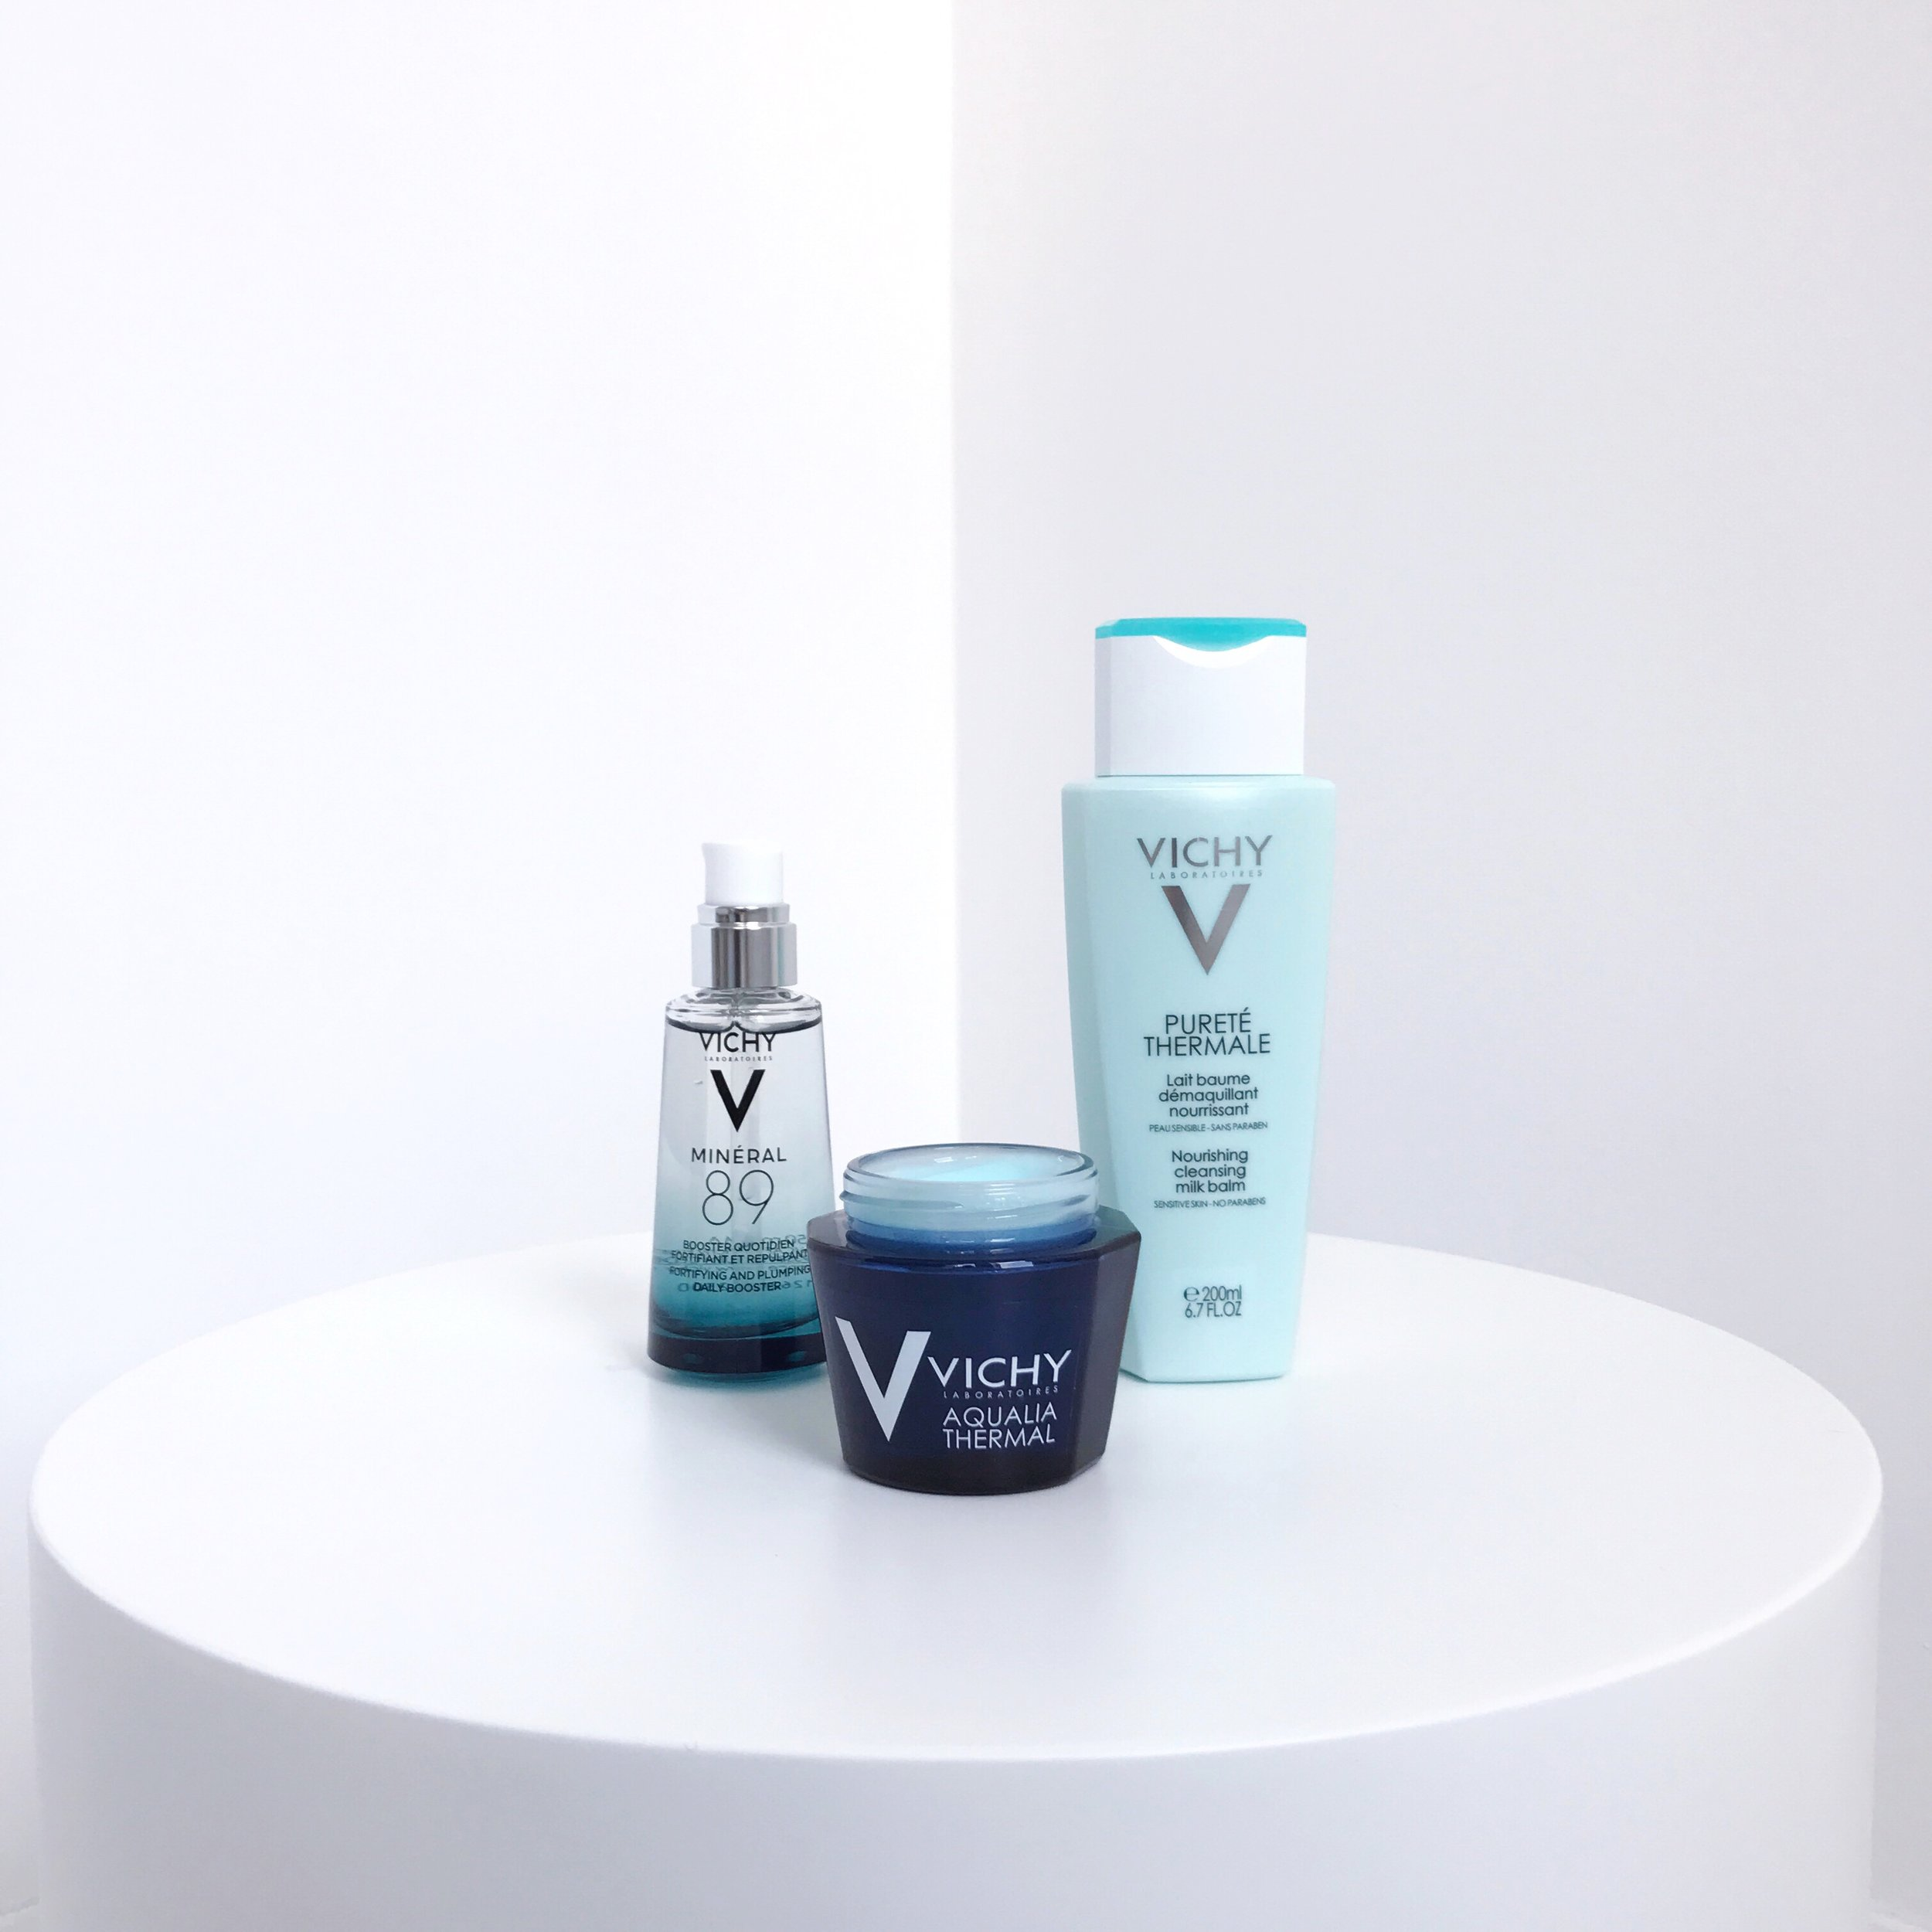 A Winter-proof skin care routine in partnership with our friends at Vichy - Your closet changes when Winter comes and so should your beauty routine!